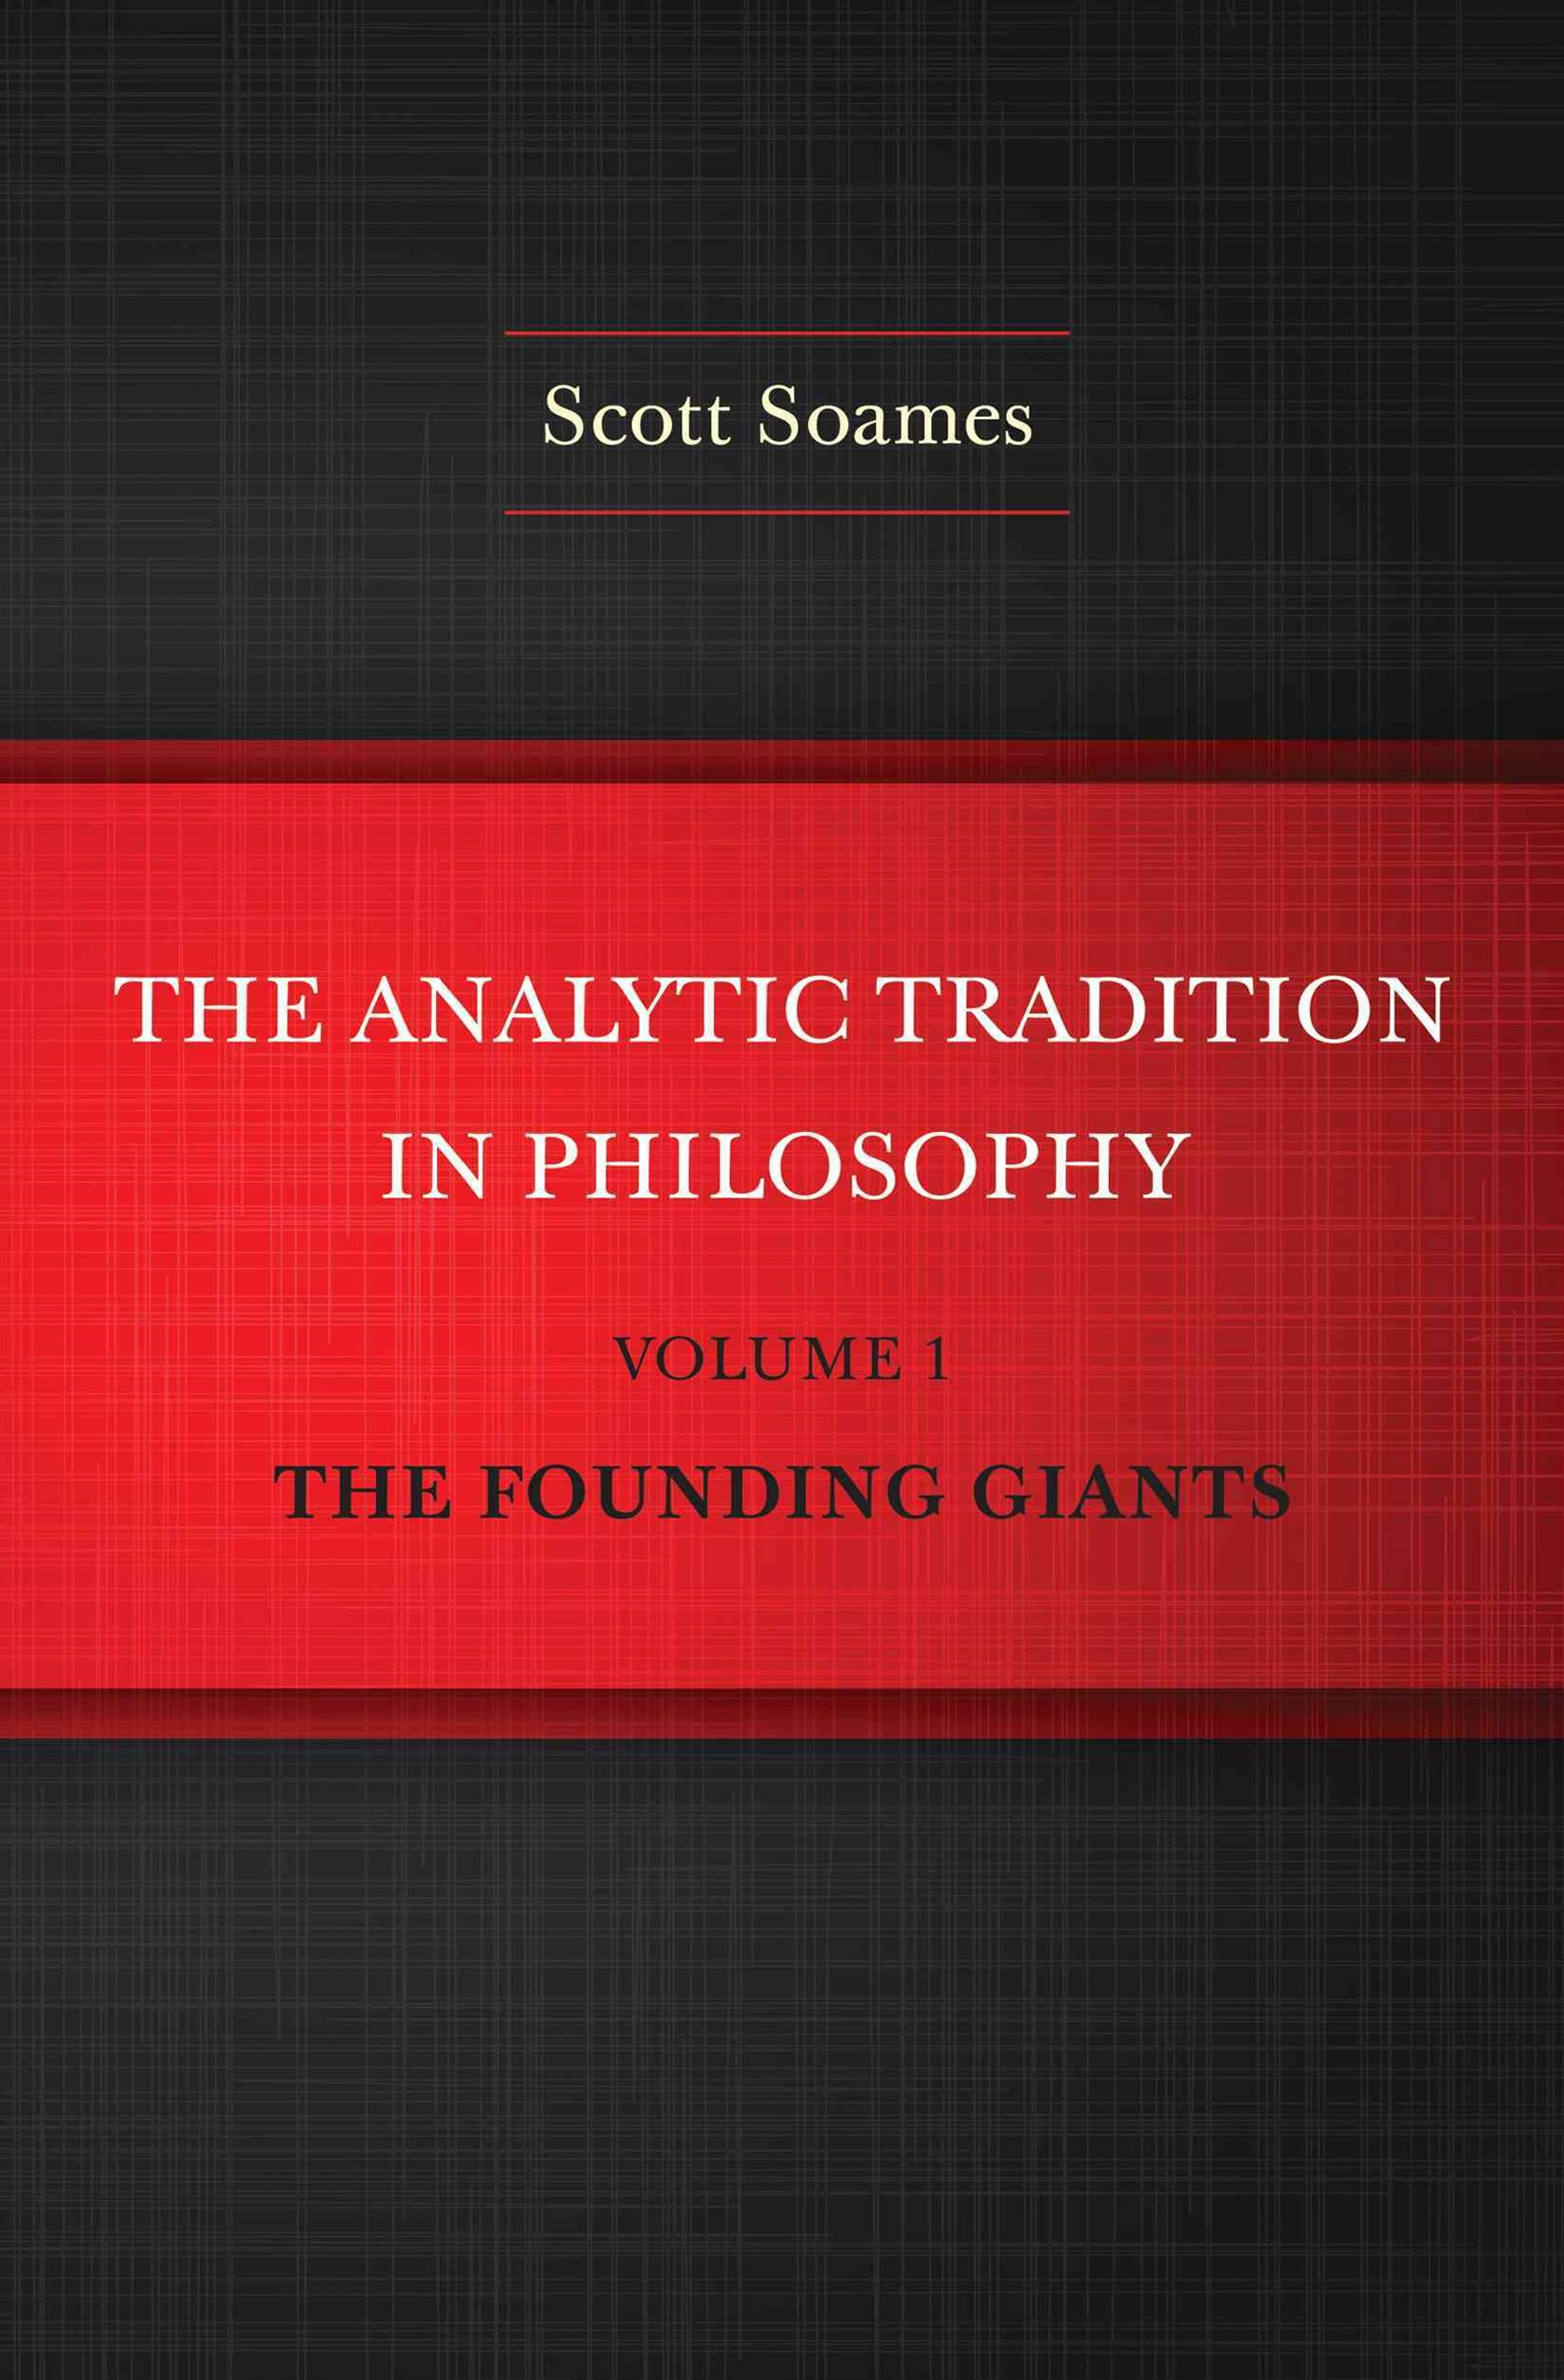 Analytic Tradition in Philosophy, Volume 1